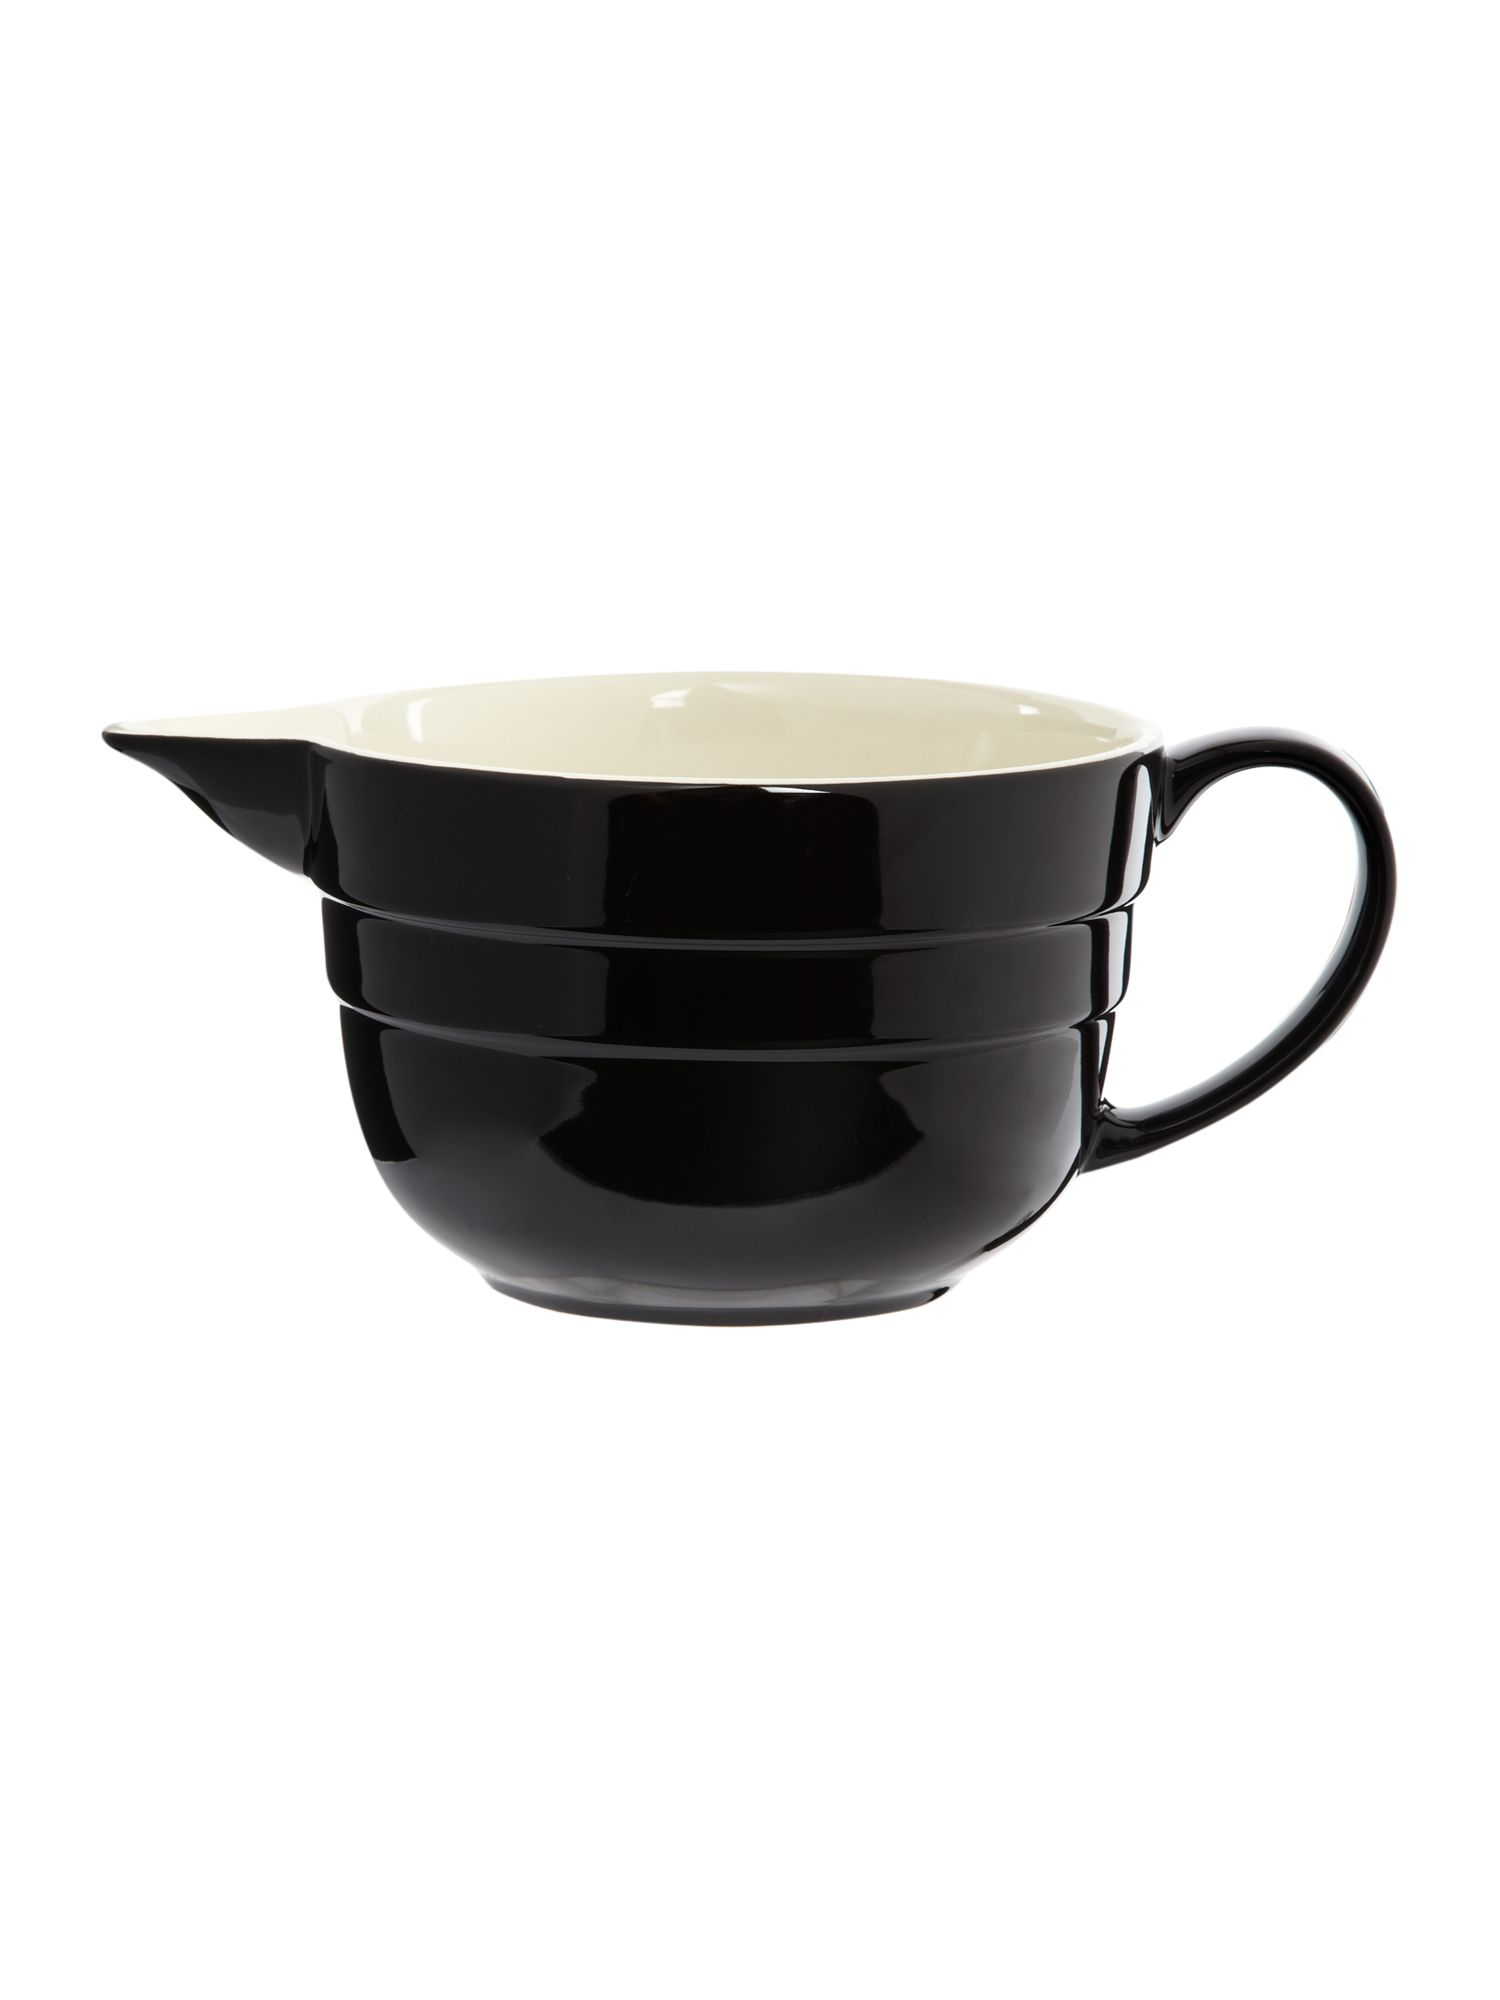 Maison batter jug, black